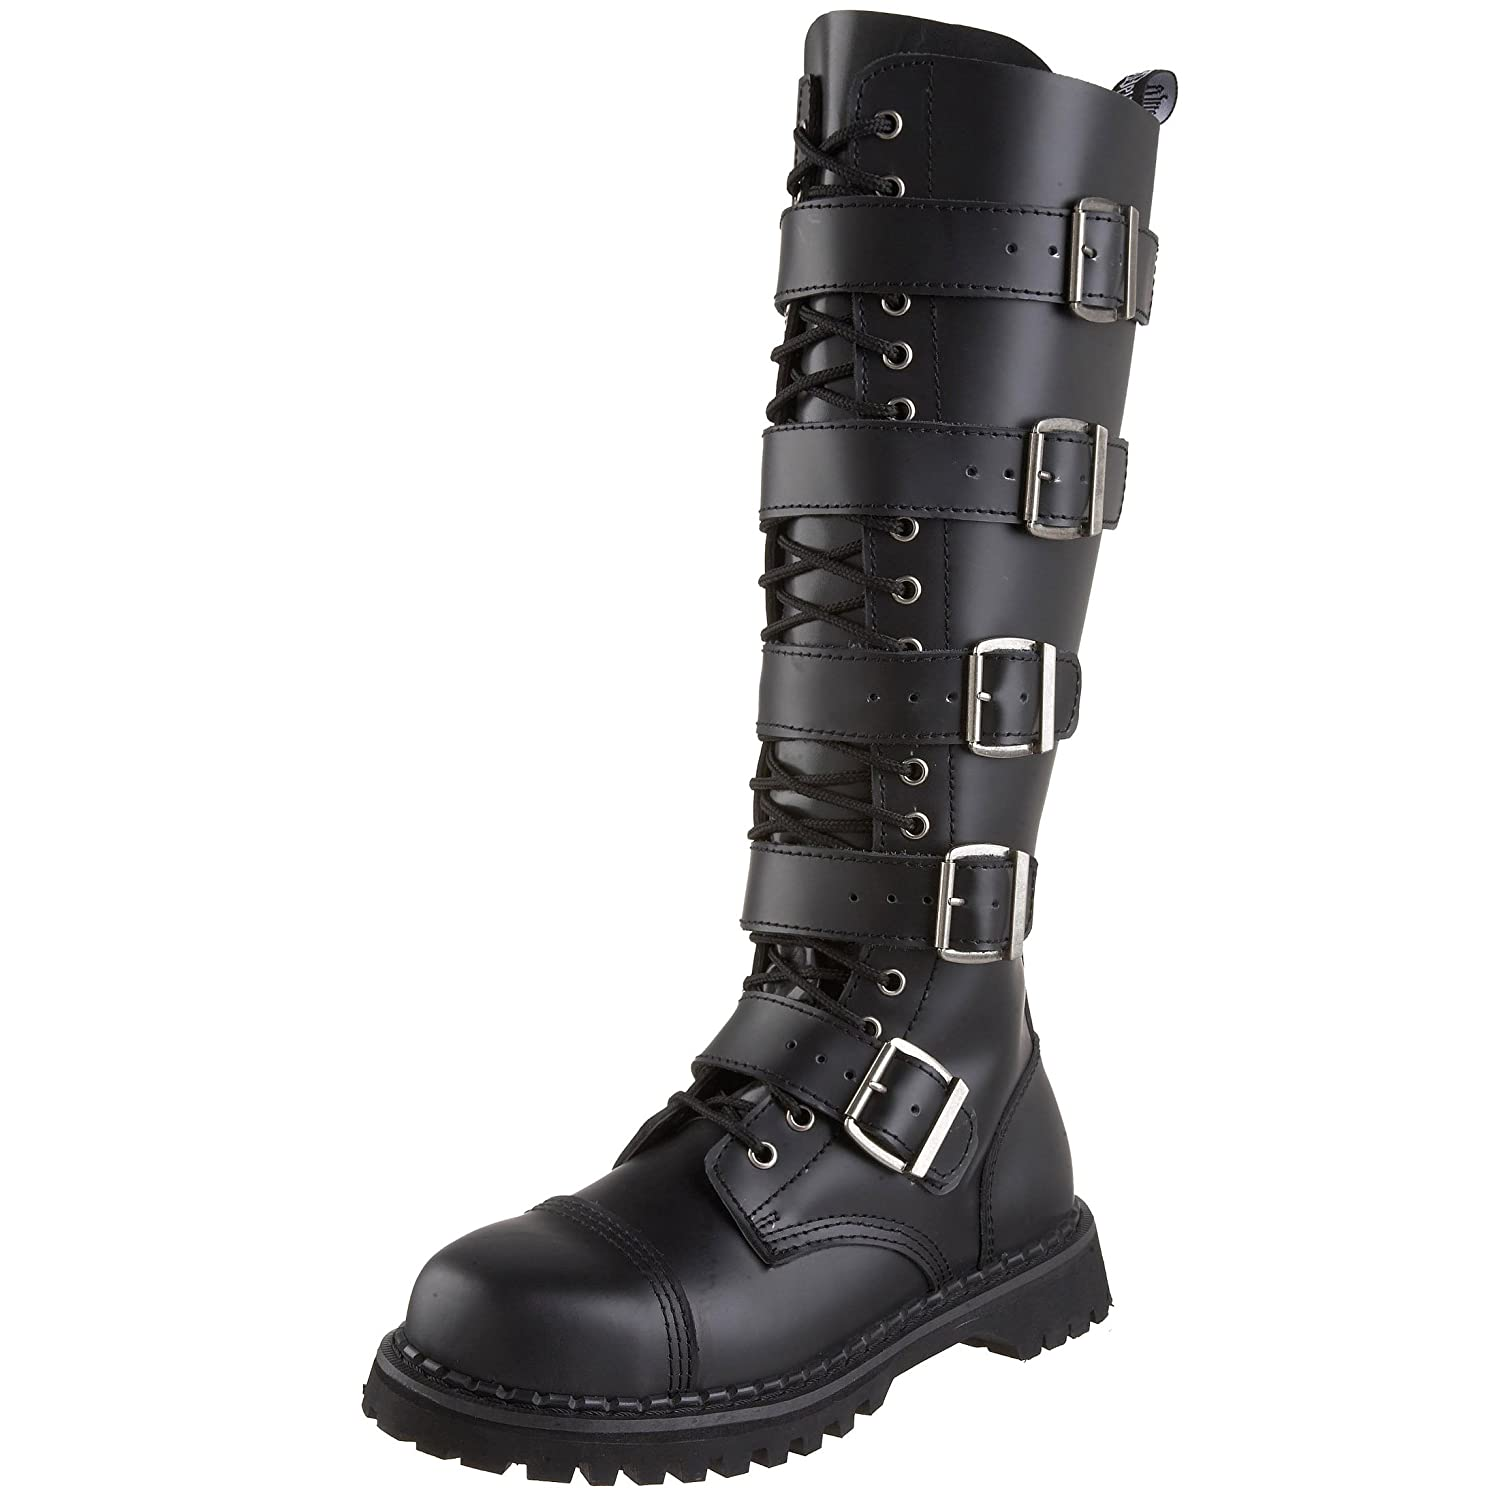 Summitfashions MENS Black Leather Knee High Boot 20 Eyelet 5 Steel Strap Gothic Punk Boot Steel 5 Toe B001GFZ61G 10 D(M) US c2f81f